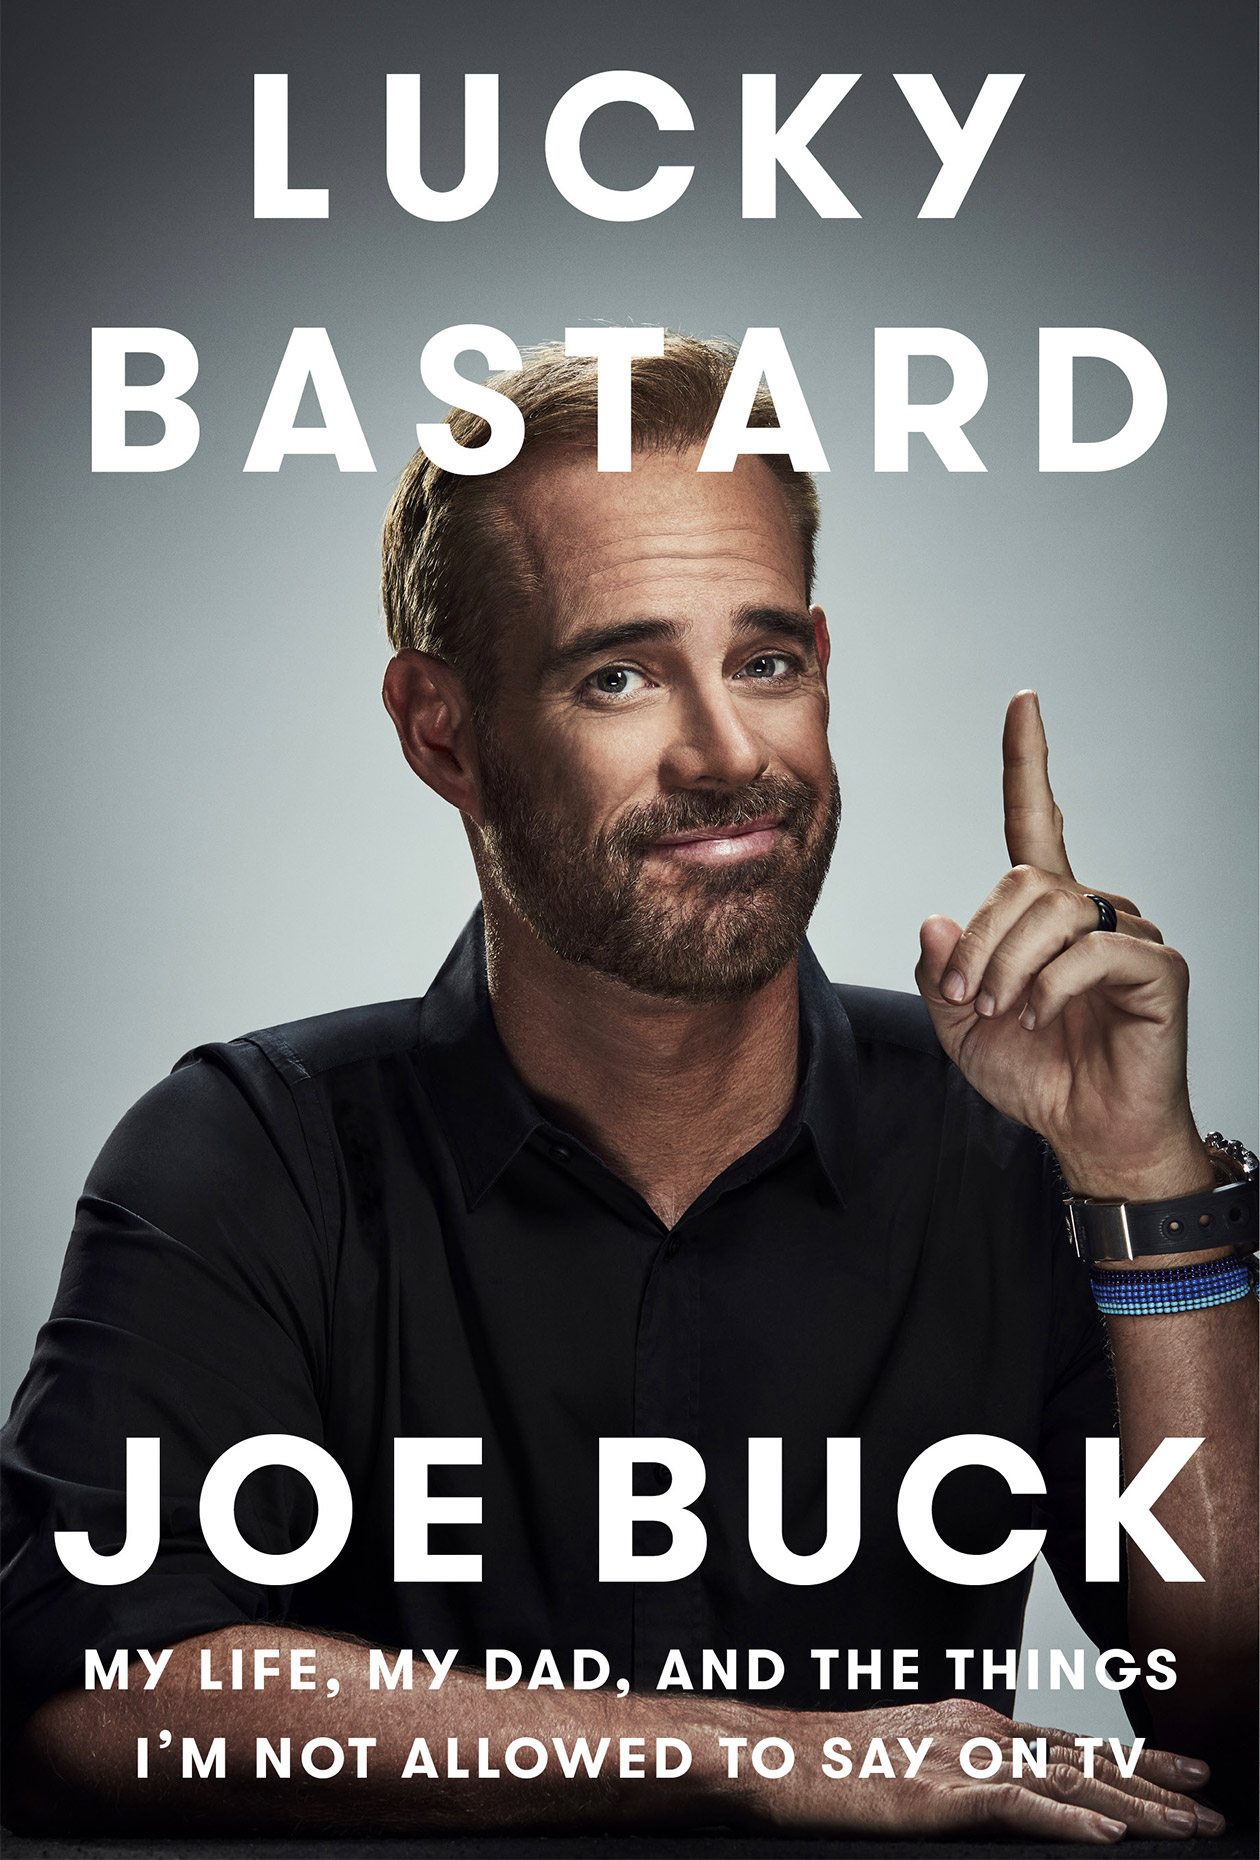 Joe-Buck_Lucky-Bastard